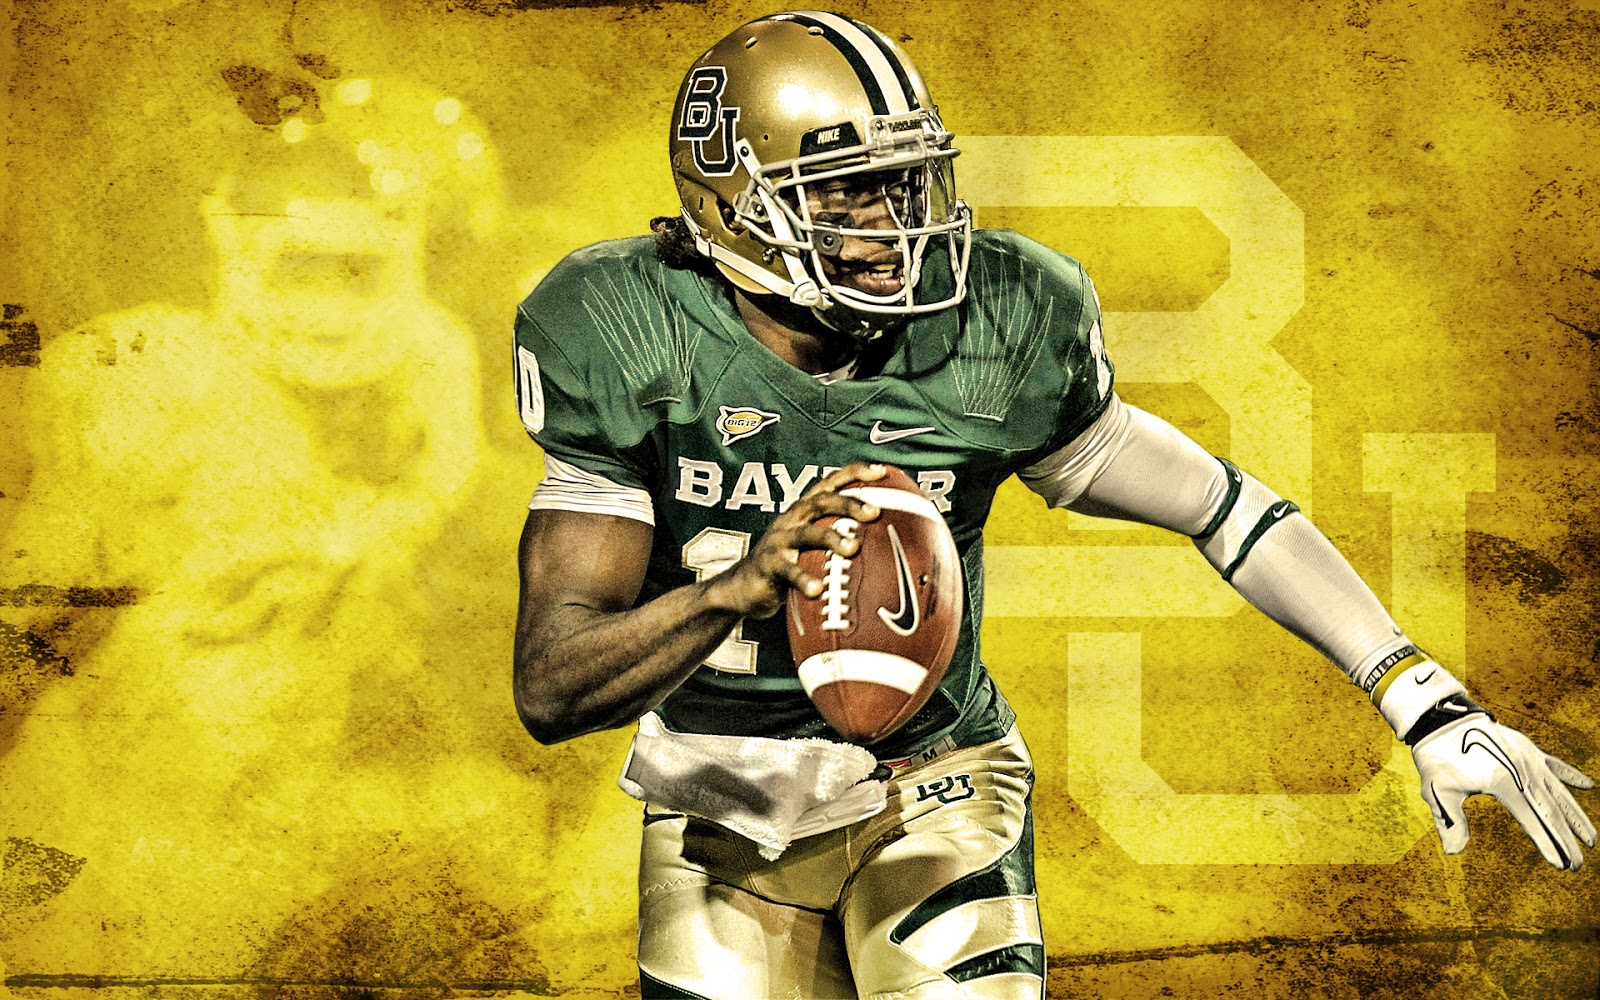 Baylor Wallpaper wwwpixsharkcom   Images Galleries 1600x1000